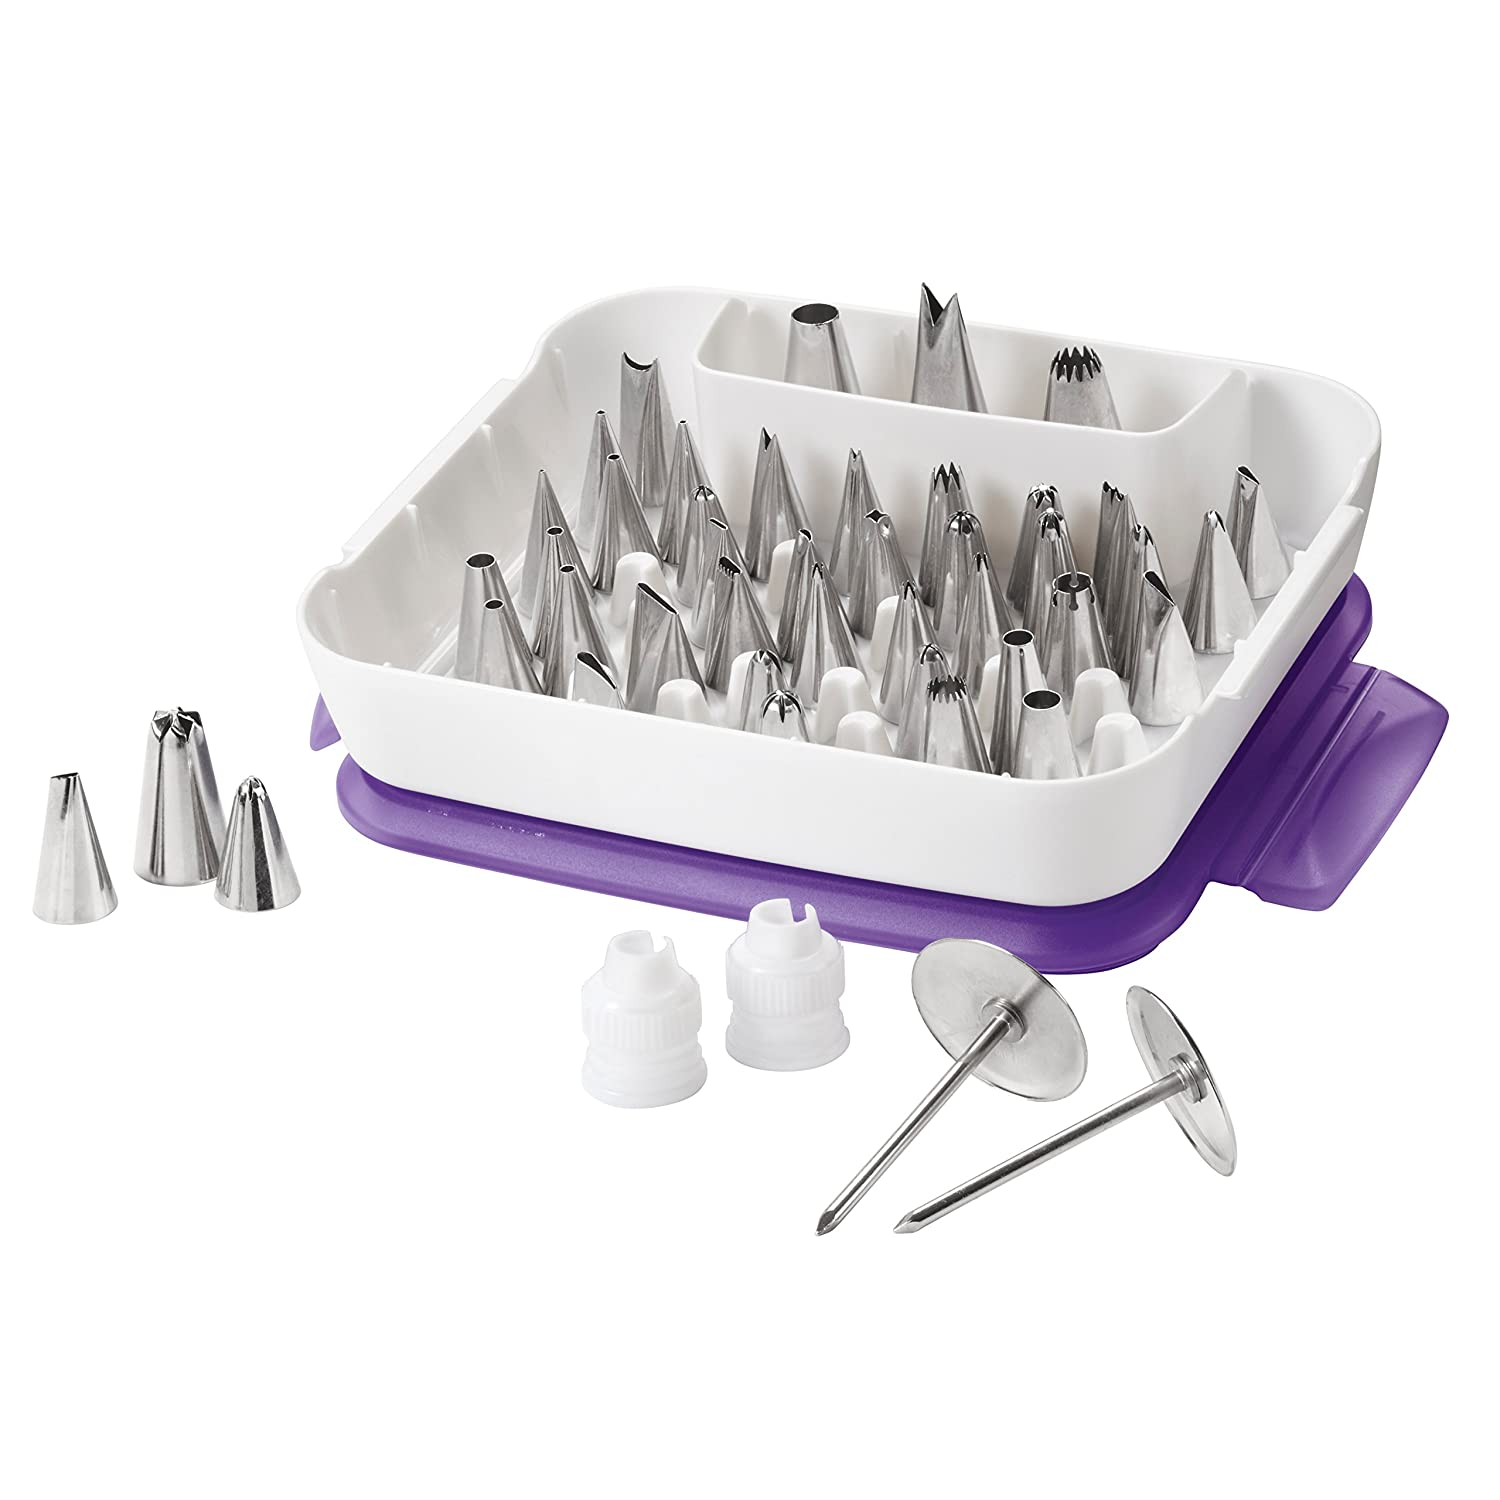 Wilton Master Decorating Tip Set, 55-Piece decorating tips, Cake Decorating Supplies 2104-0240